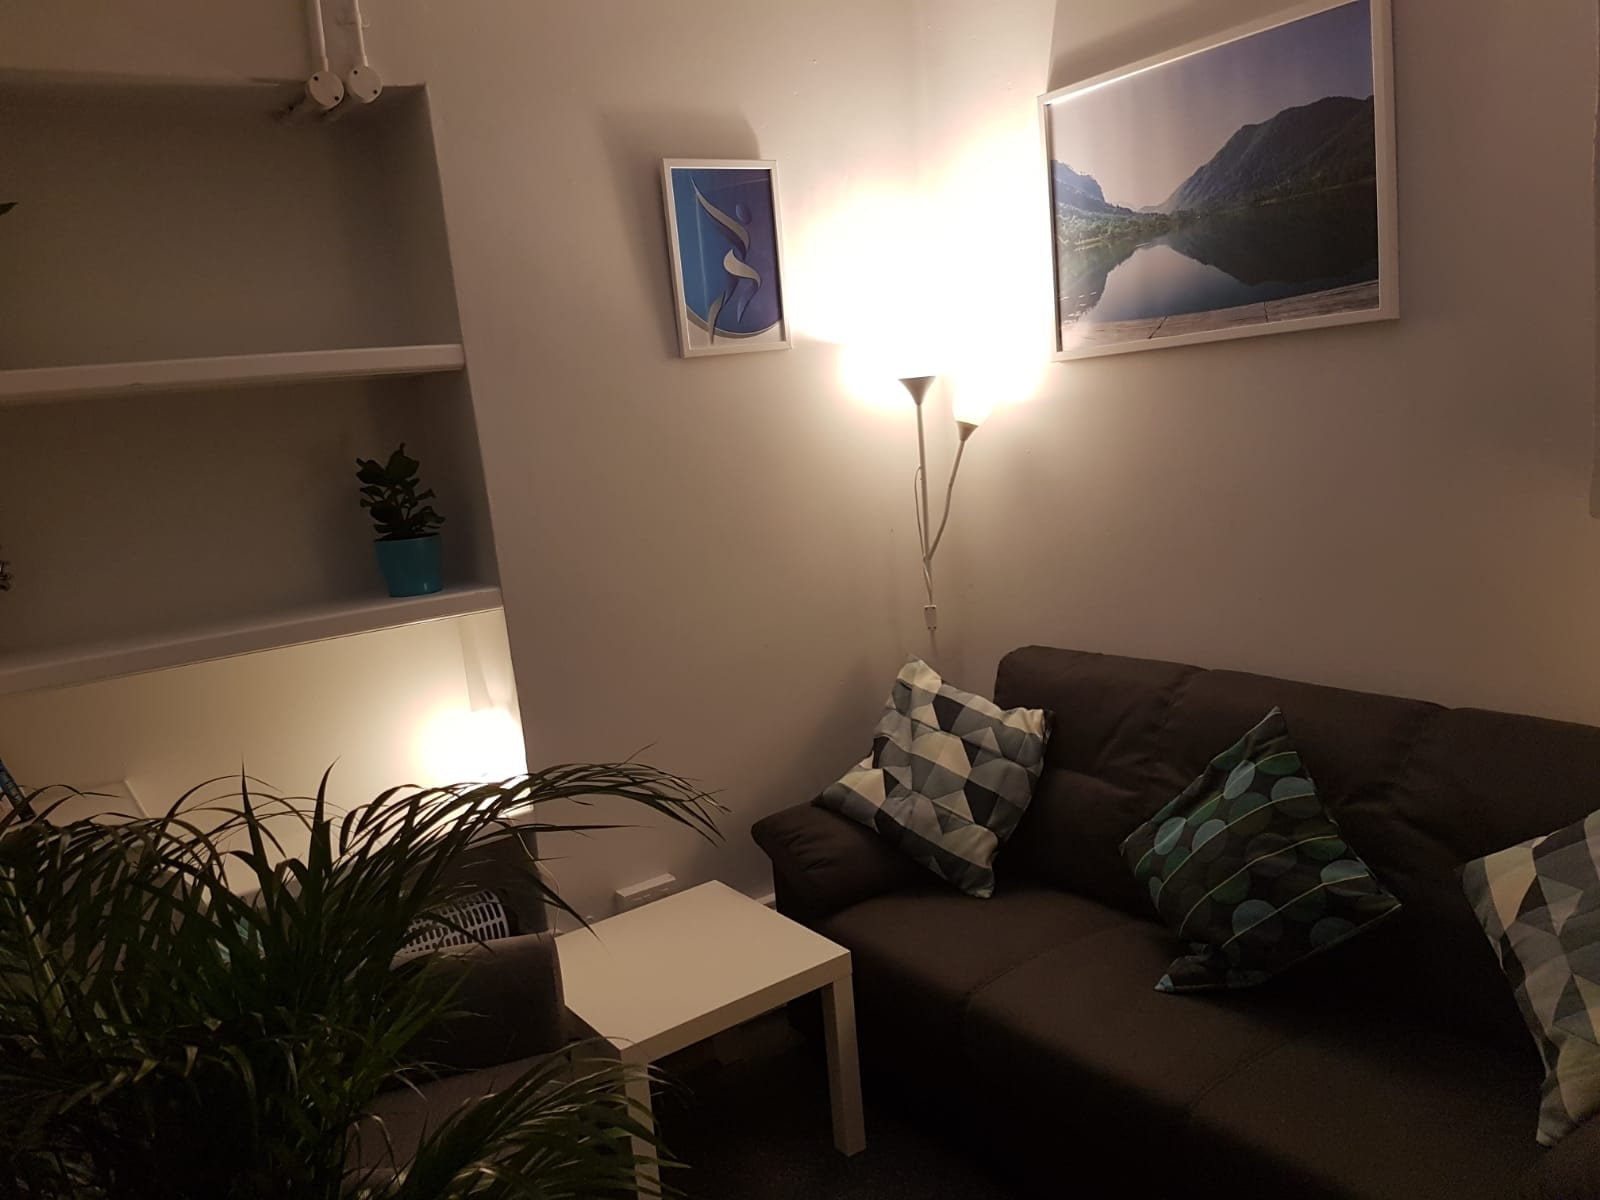 Consultation room, clinical psycholocy, councelling